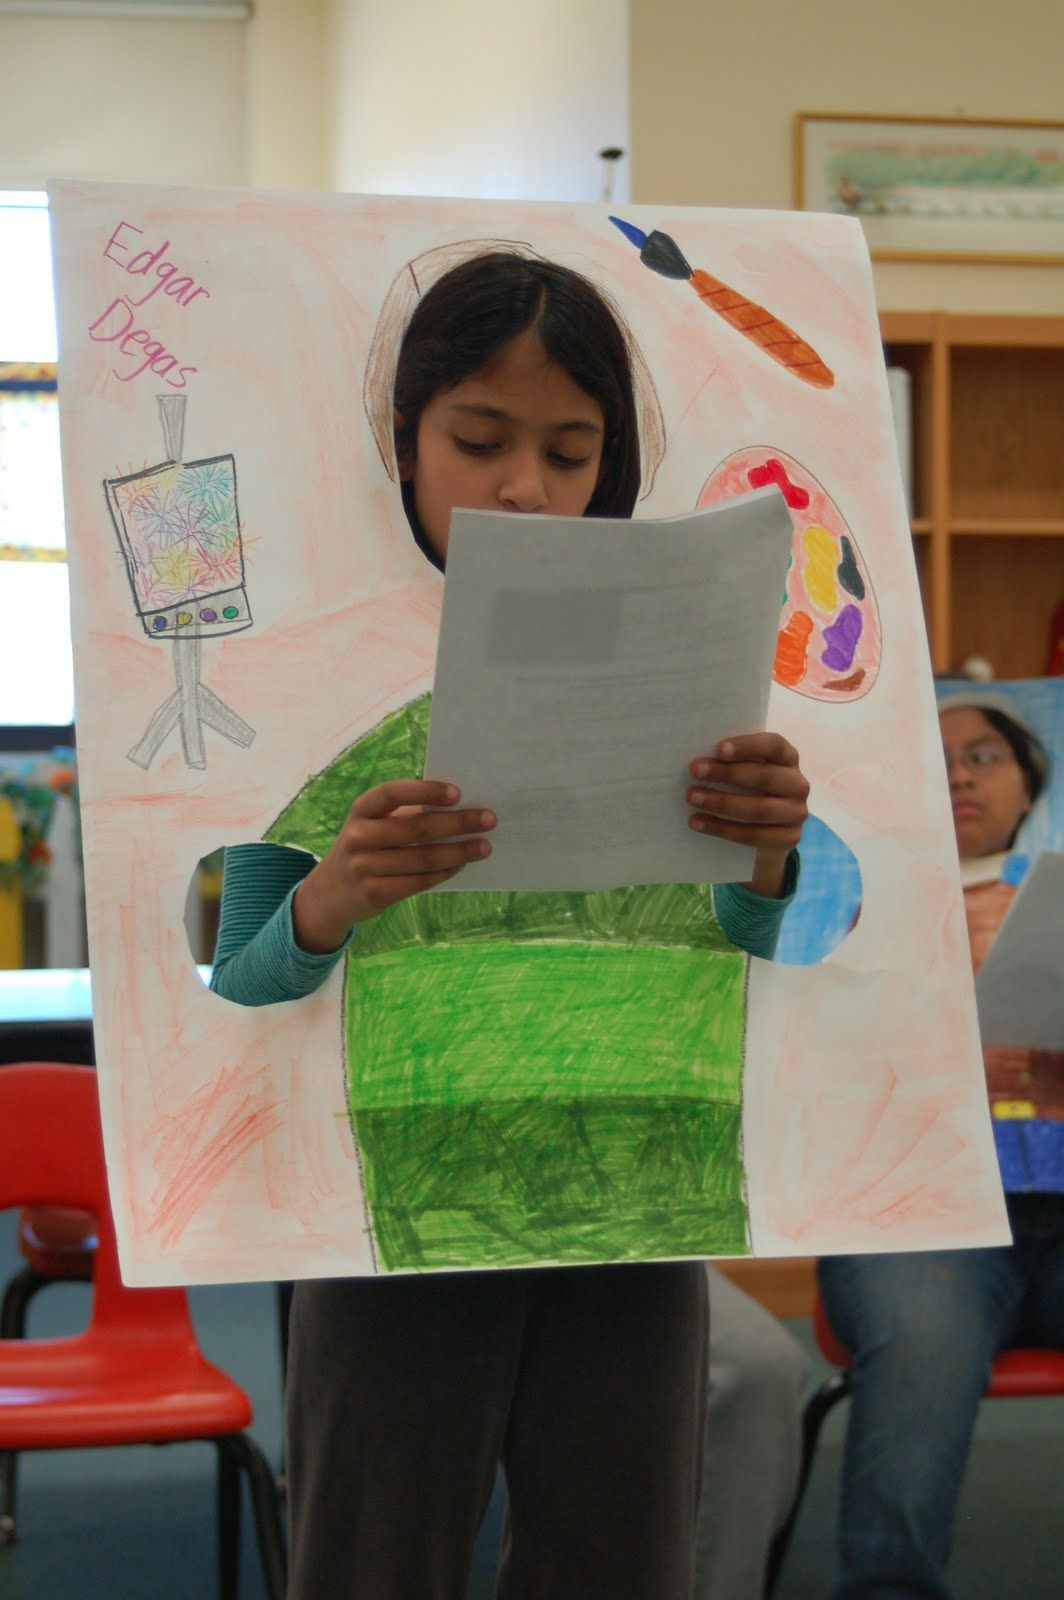 What A Creative Way To Use A Poster Dress Up Like Person Character That You Are Doing A Report On First Grade Writing Biography Project Teacher Friends